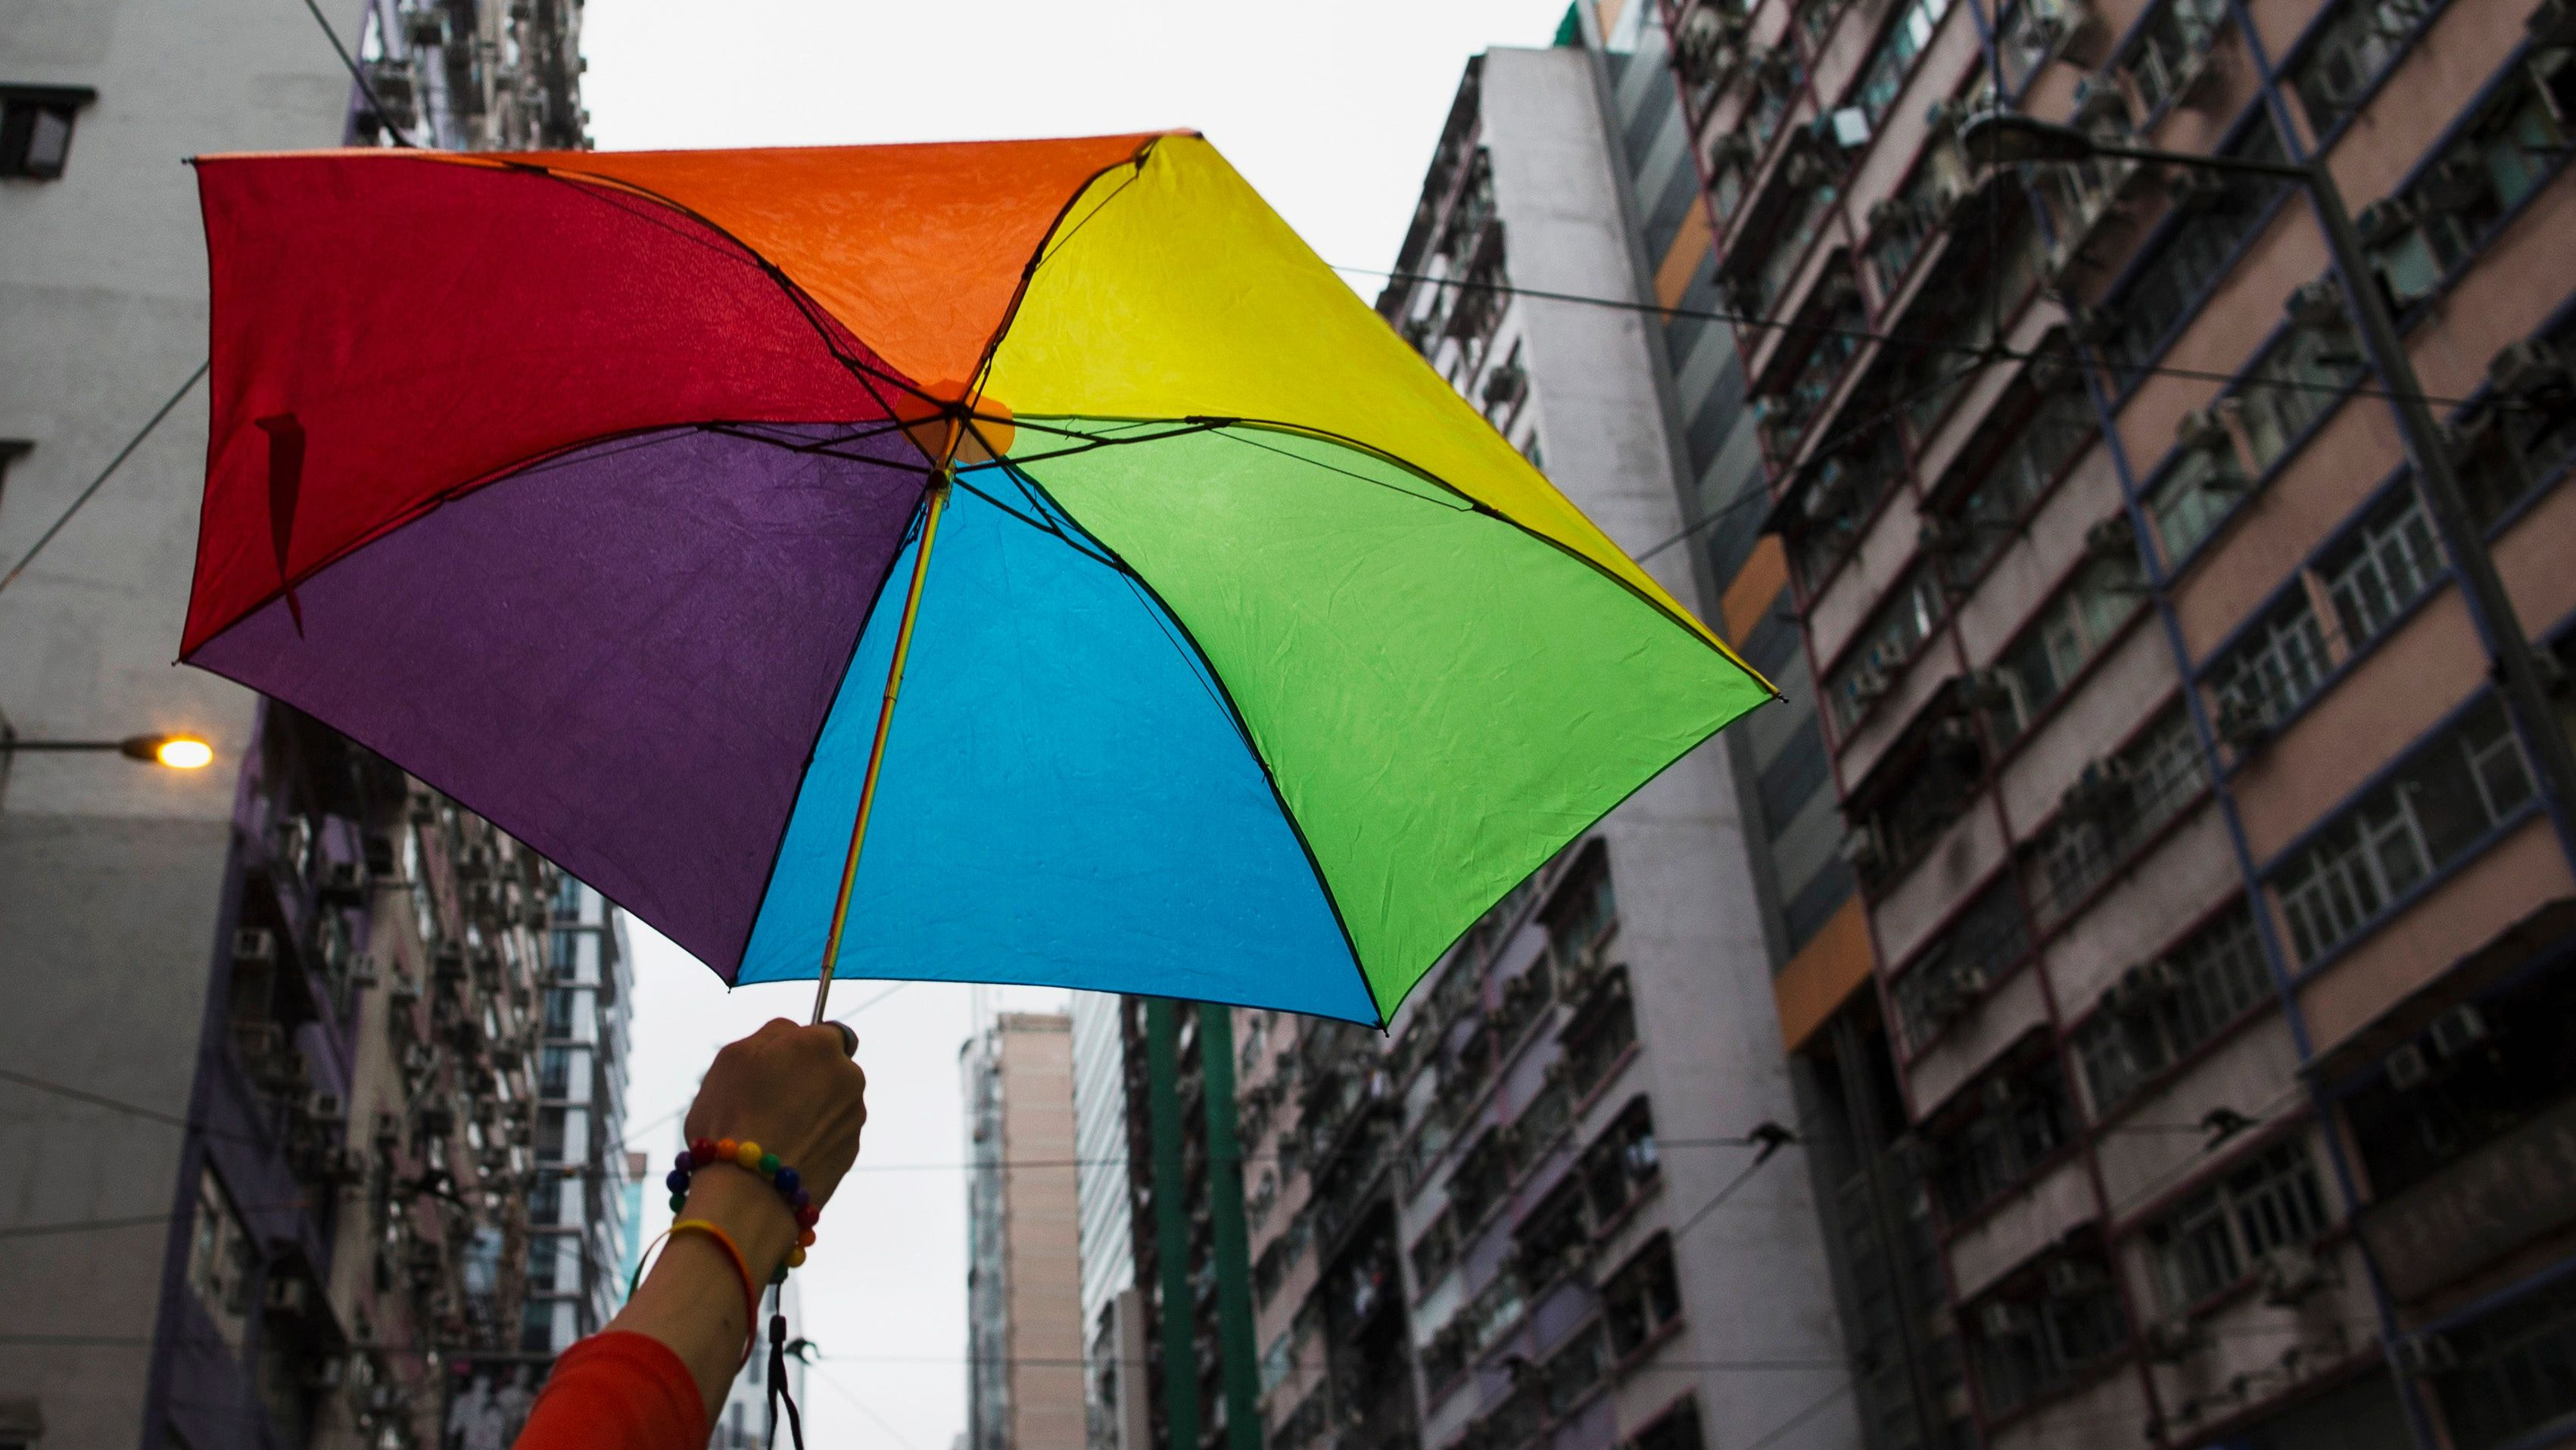 A participant holds a rainbow umbrella as he attends a lesbian, gay, bisexual and transgender (LGBT) Pride Parade in Hong Kong November 8, 2014. Participants from the LGBT communities took to the streets on Saturday to demonstrate for their rights. REUTERS/Tyrone Siu